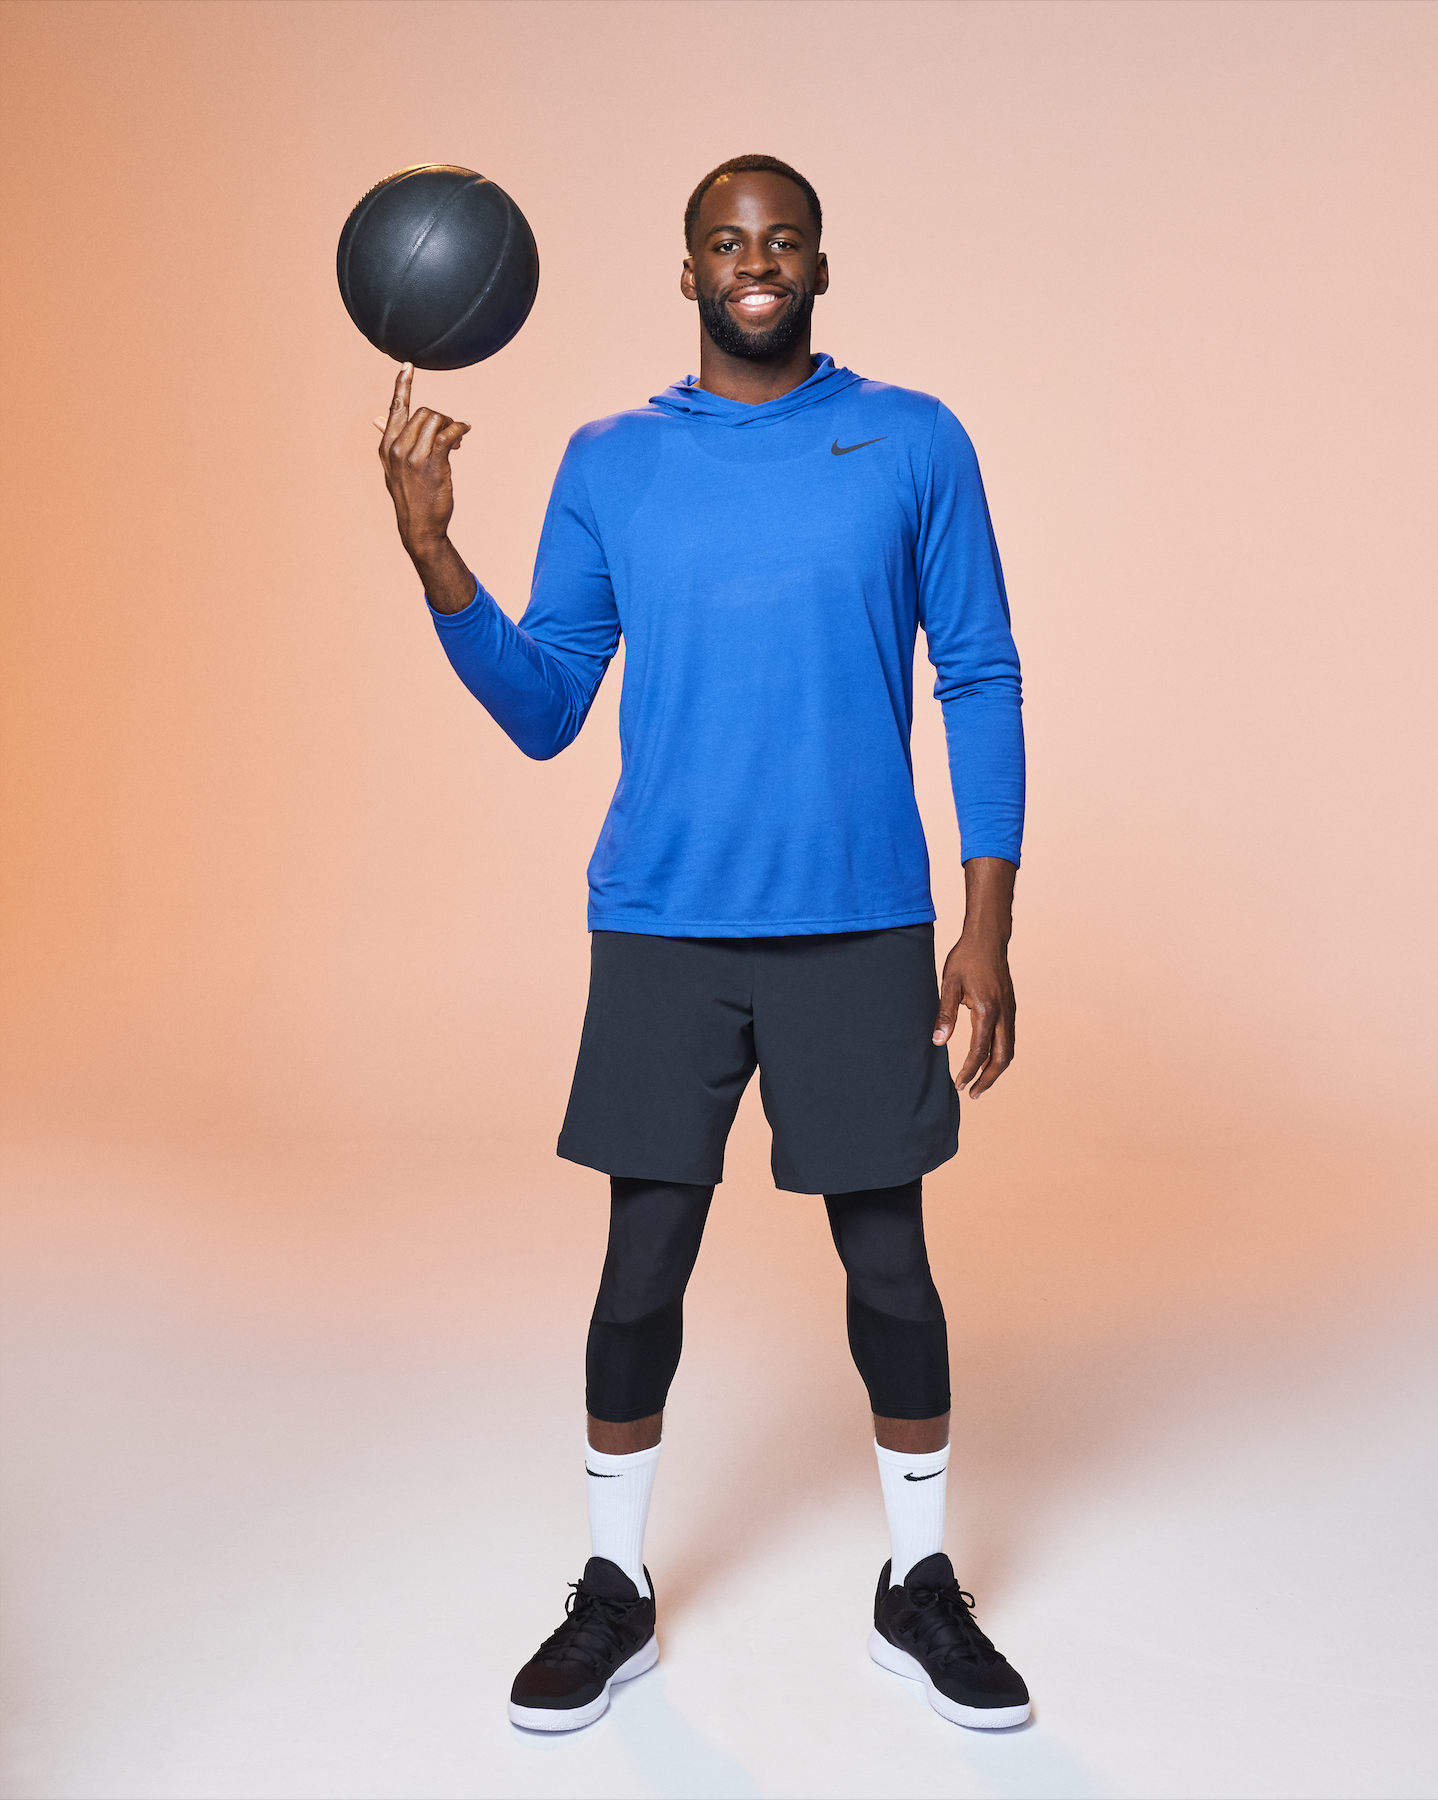 Why Draymond Green Decided to Invest In Fitness